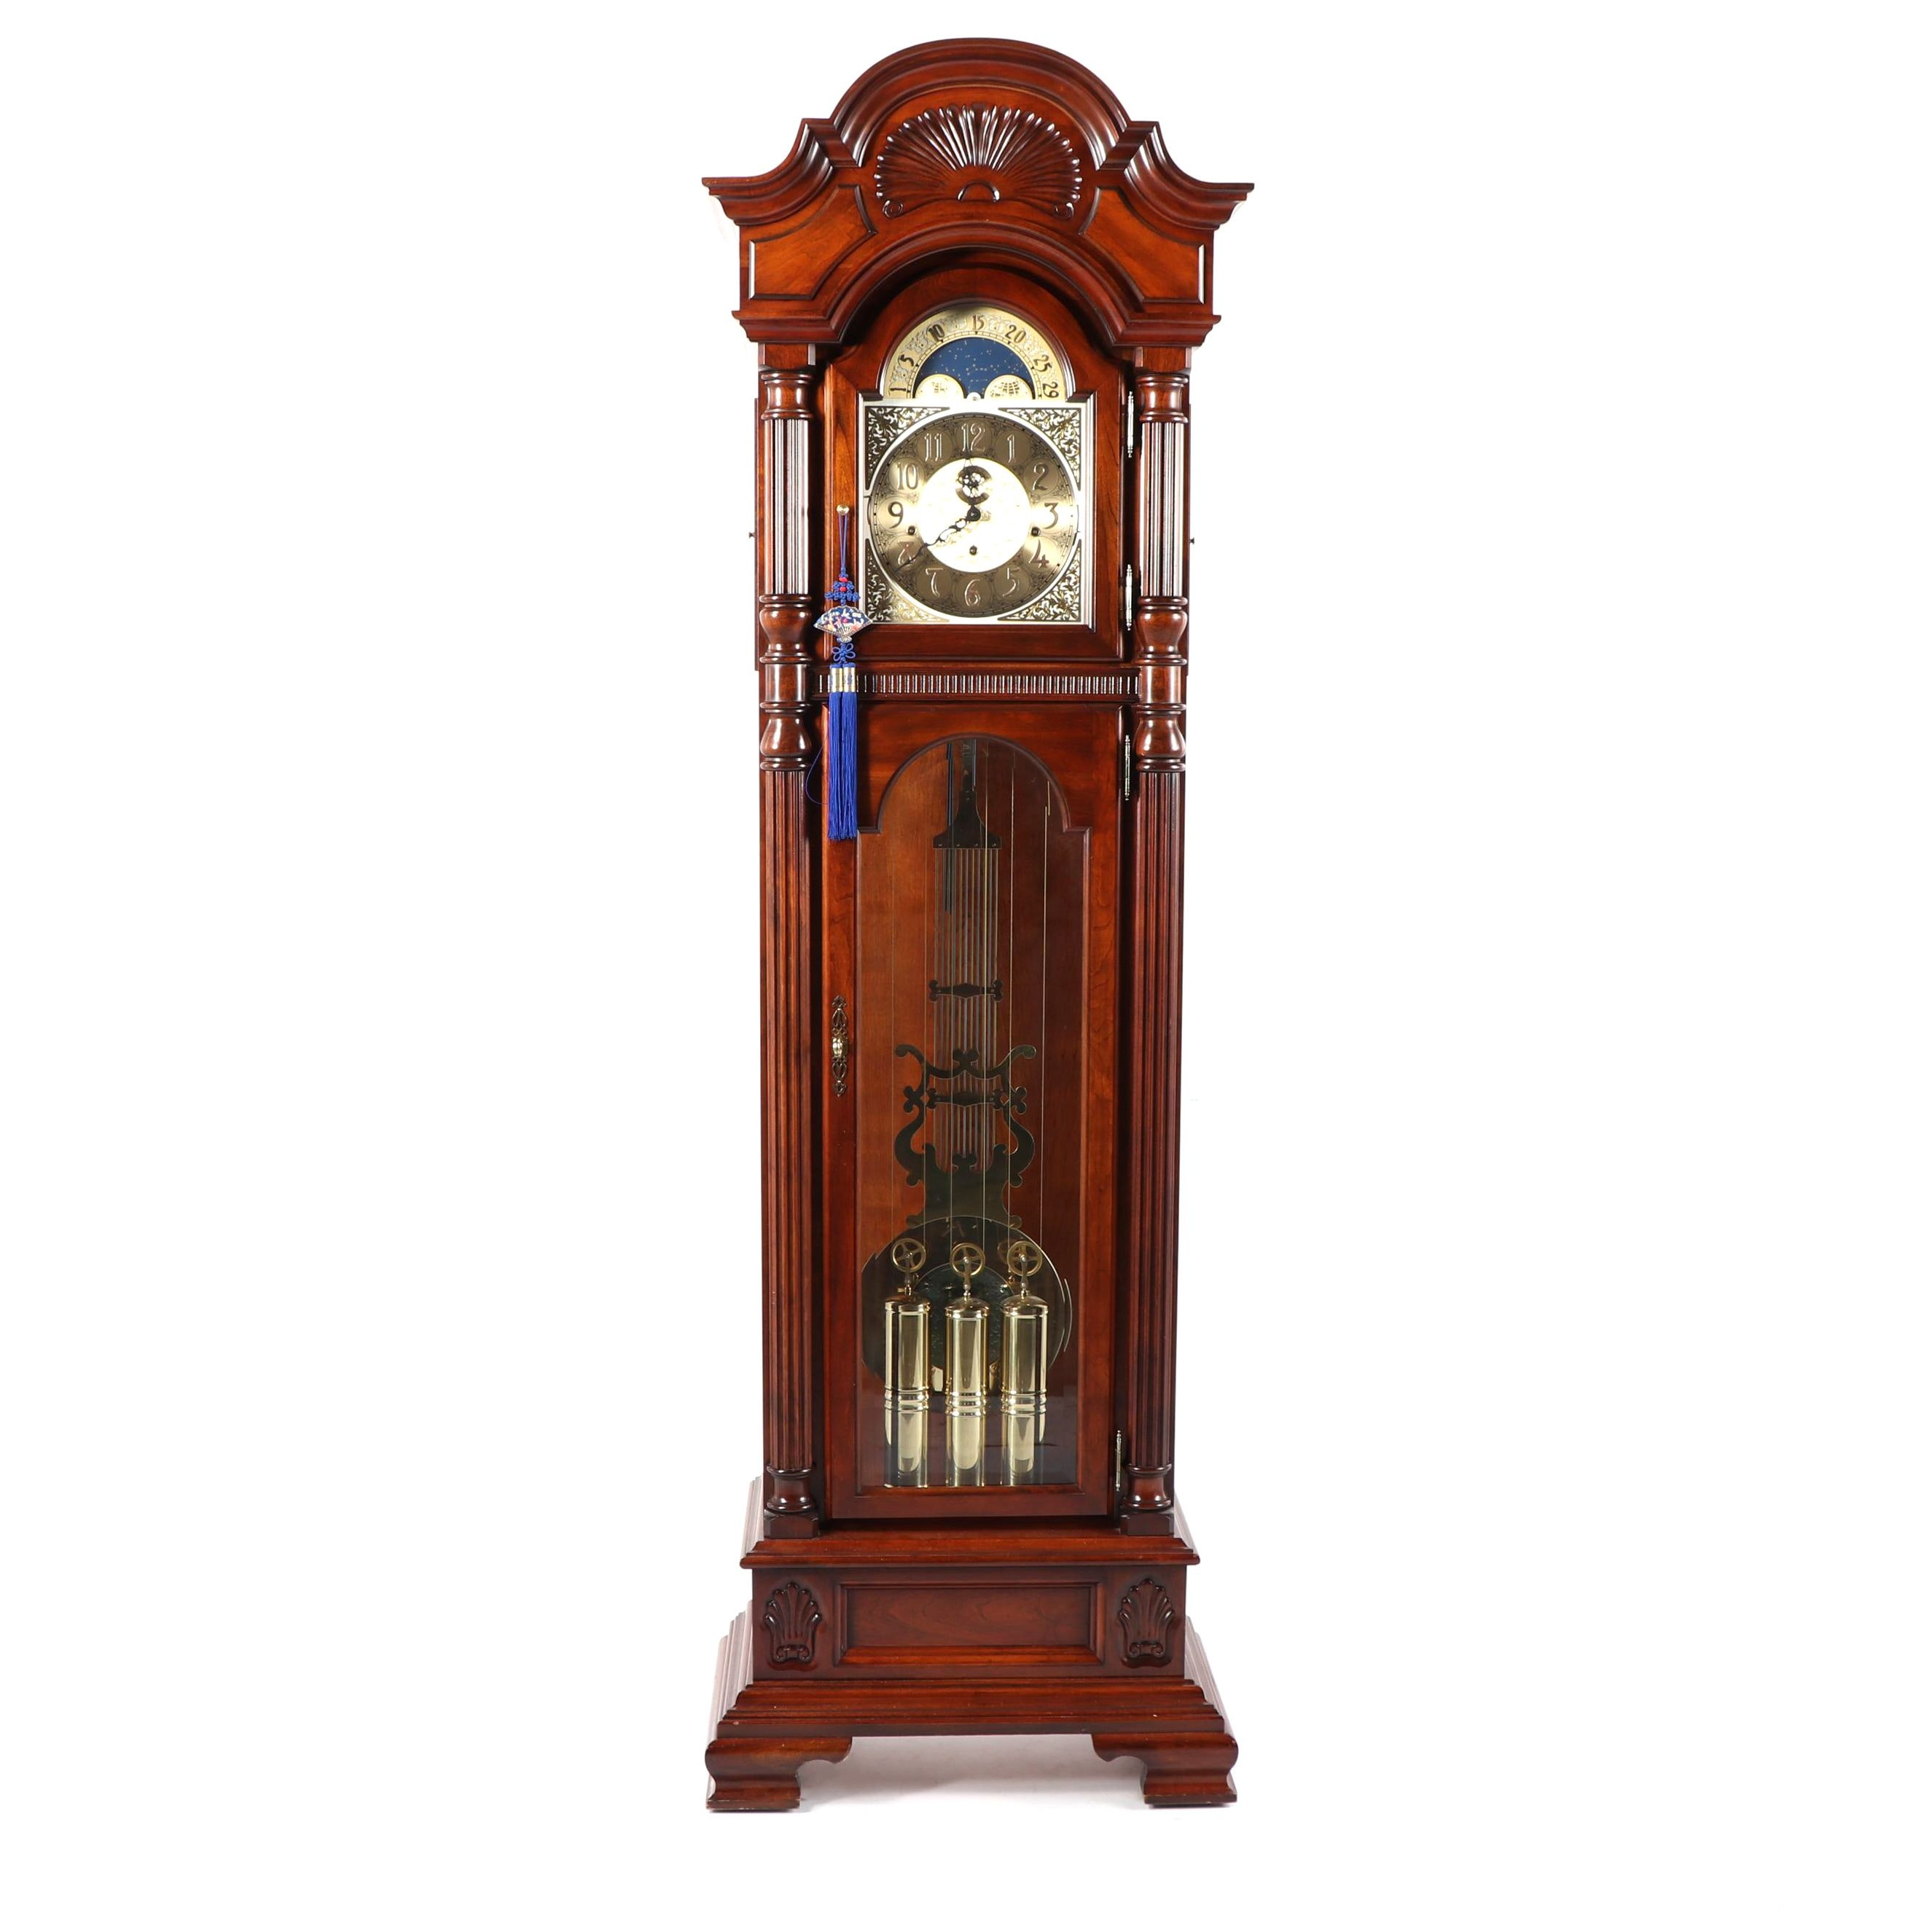 Sligh Grandfather Clock with Moon Phase Dial